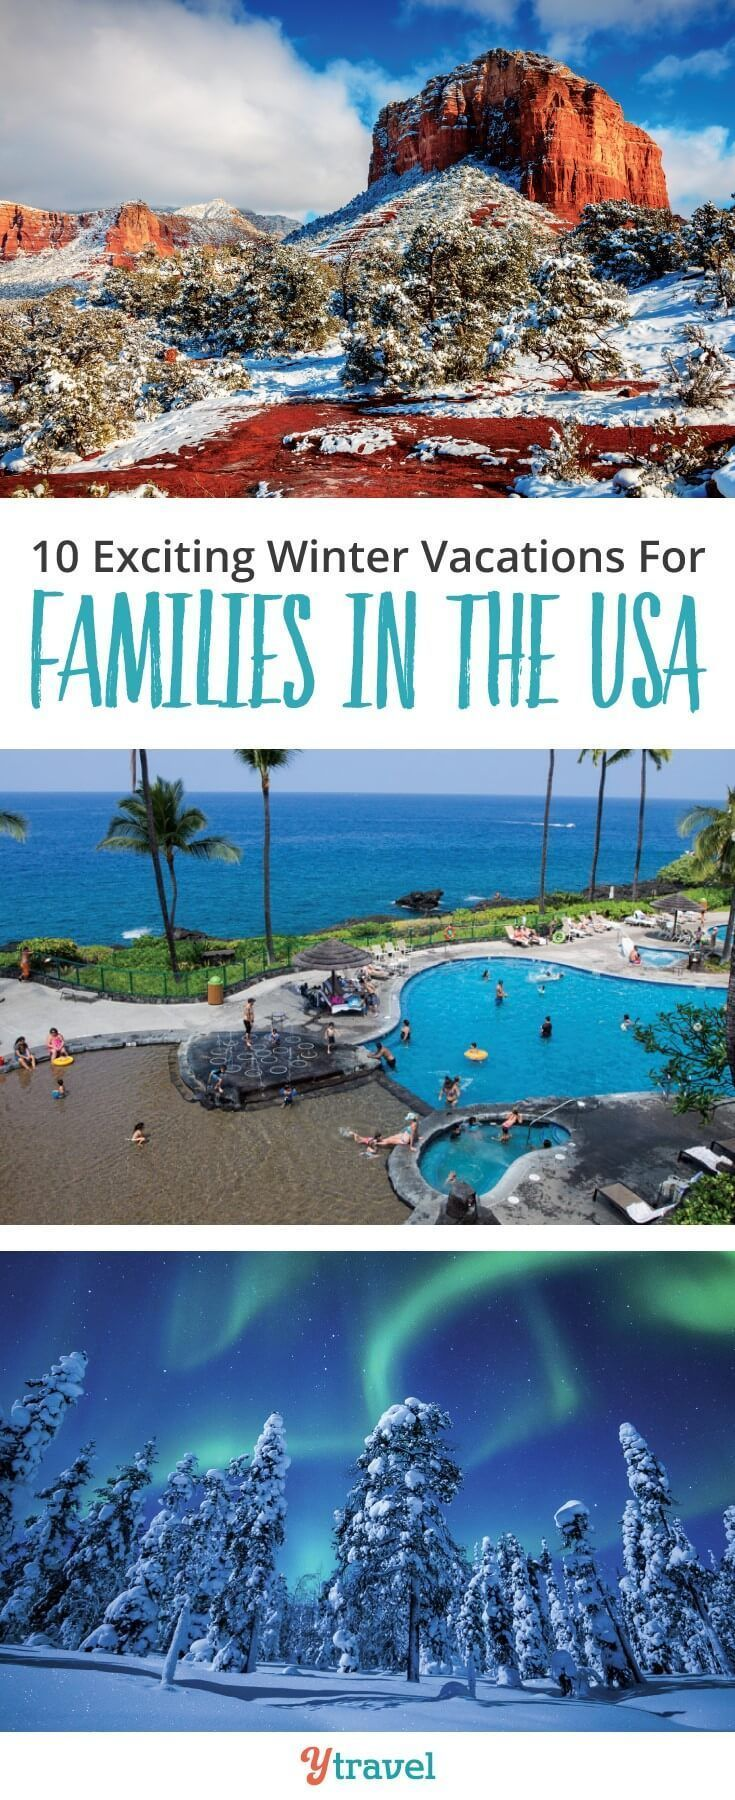 Cheap All Inclusive Family Vacation: 10 Exciting Winter Vacations For Families In The USA